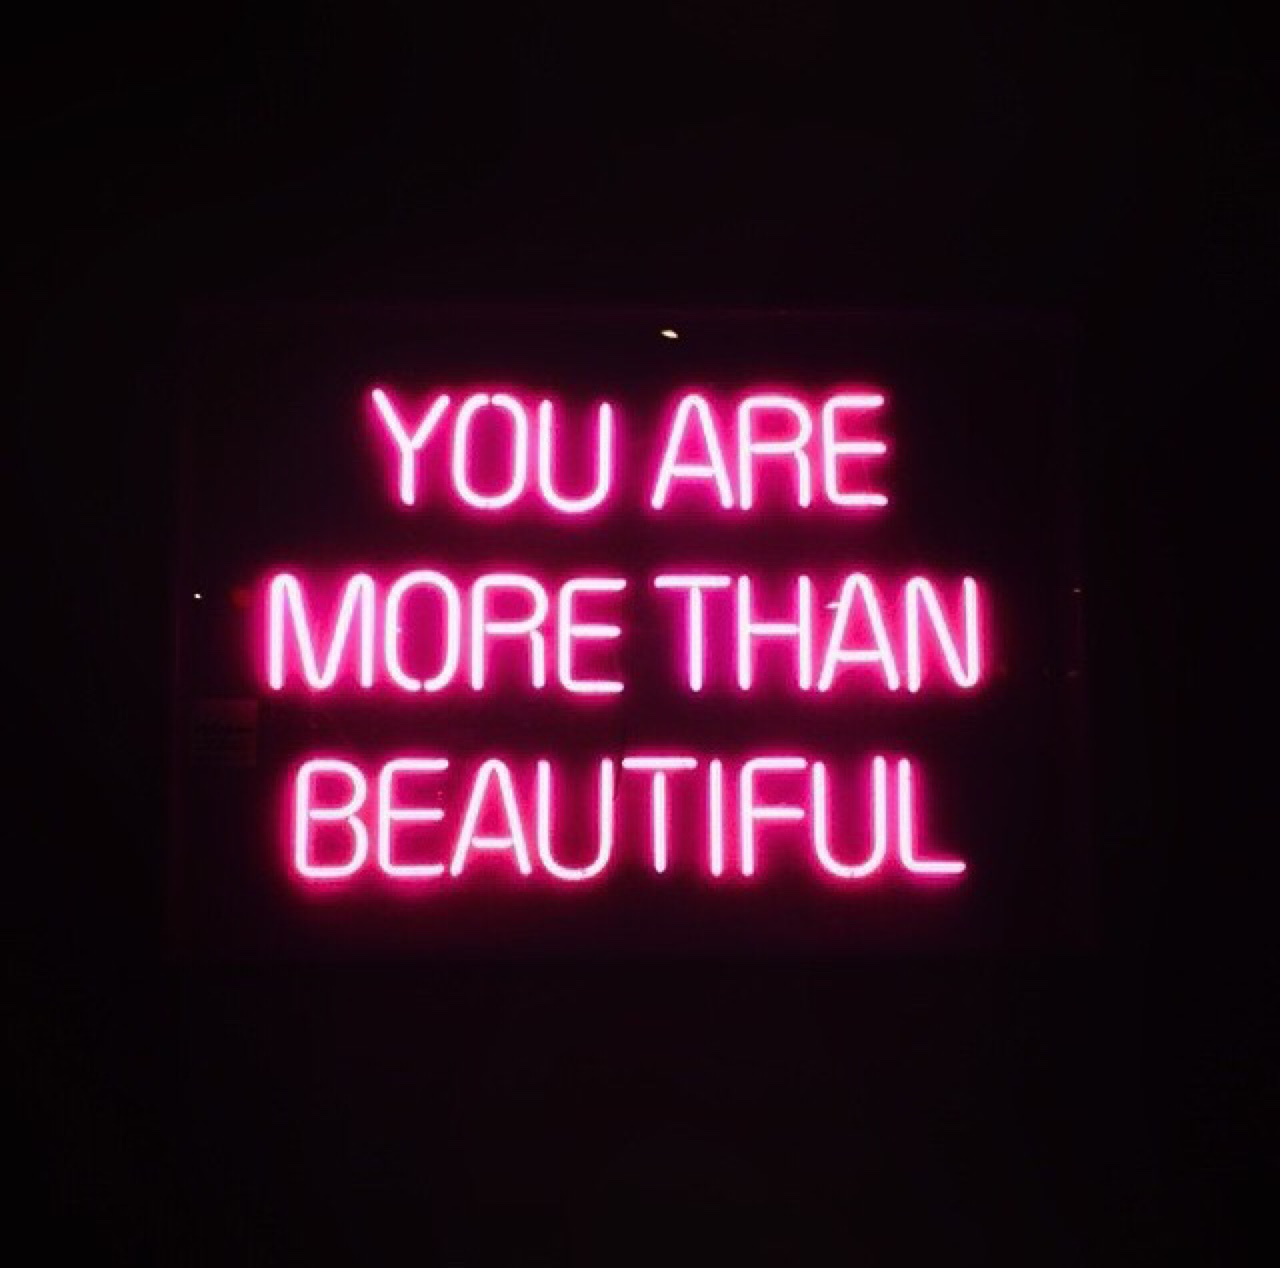 235 images about neon lights on we heart it see more about